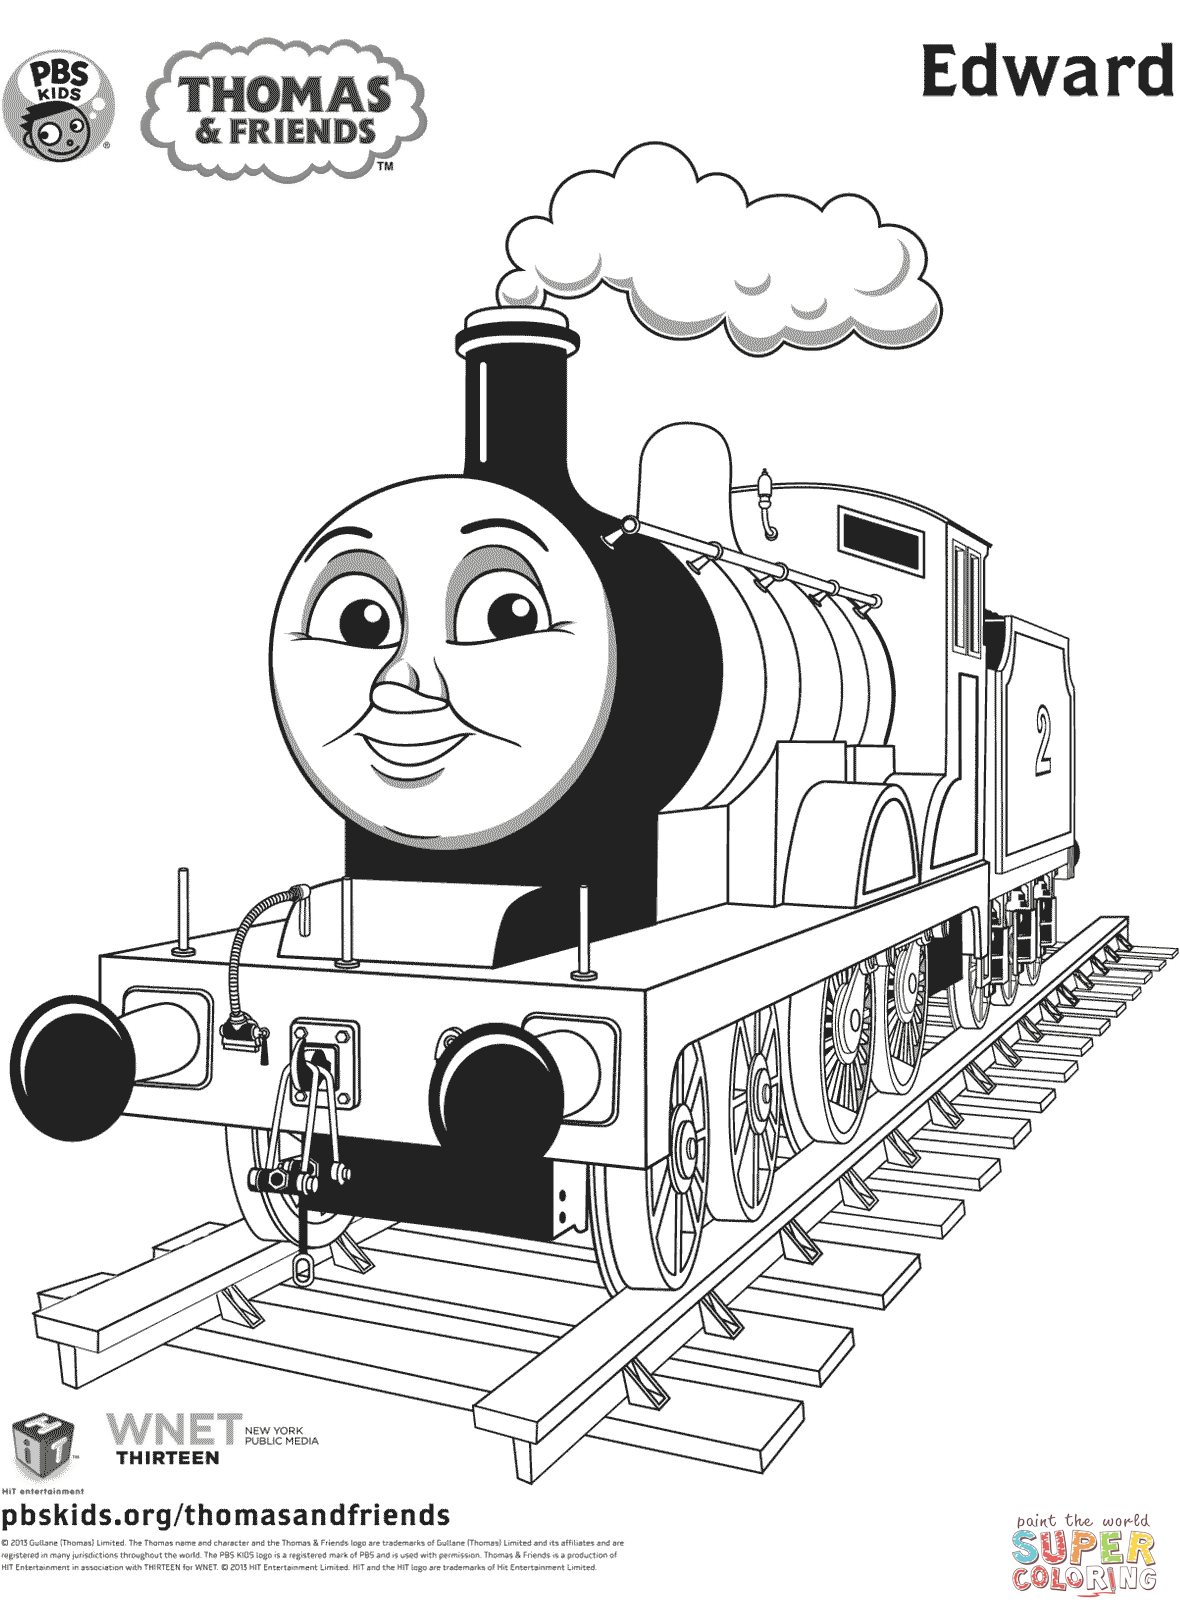 Thomas And Friends Coloring Pages Thomas Friends Coloring Pages Free Coloring Pages